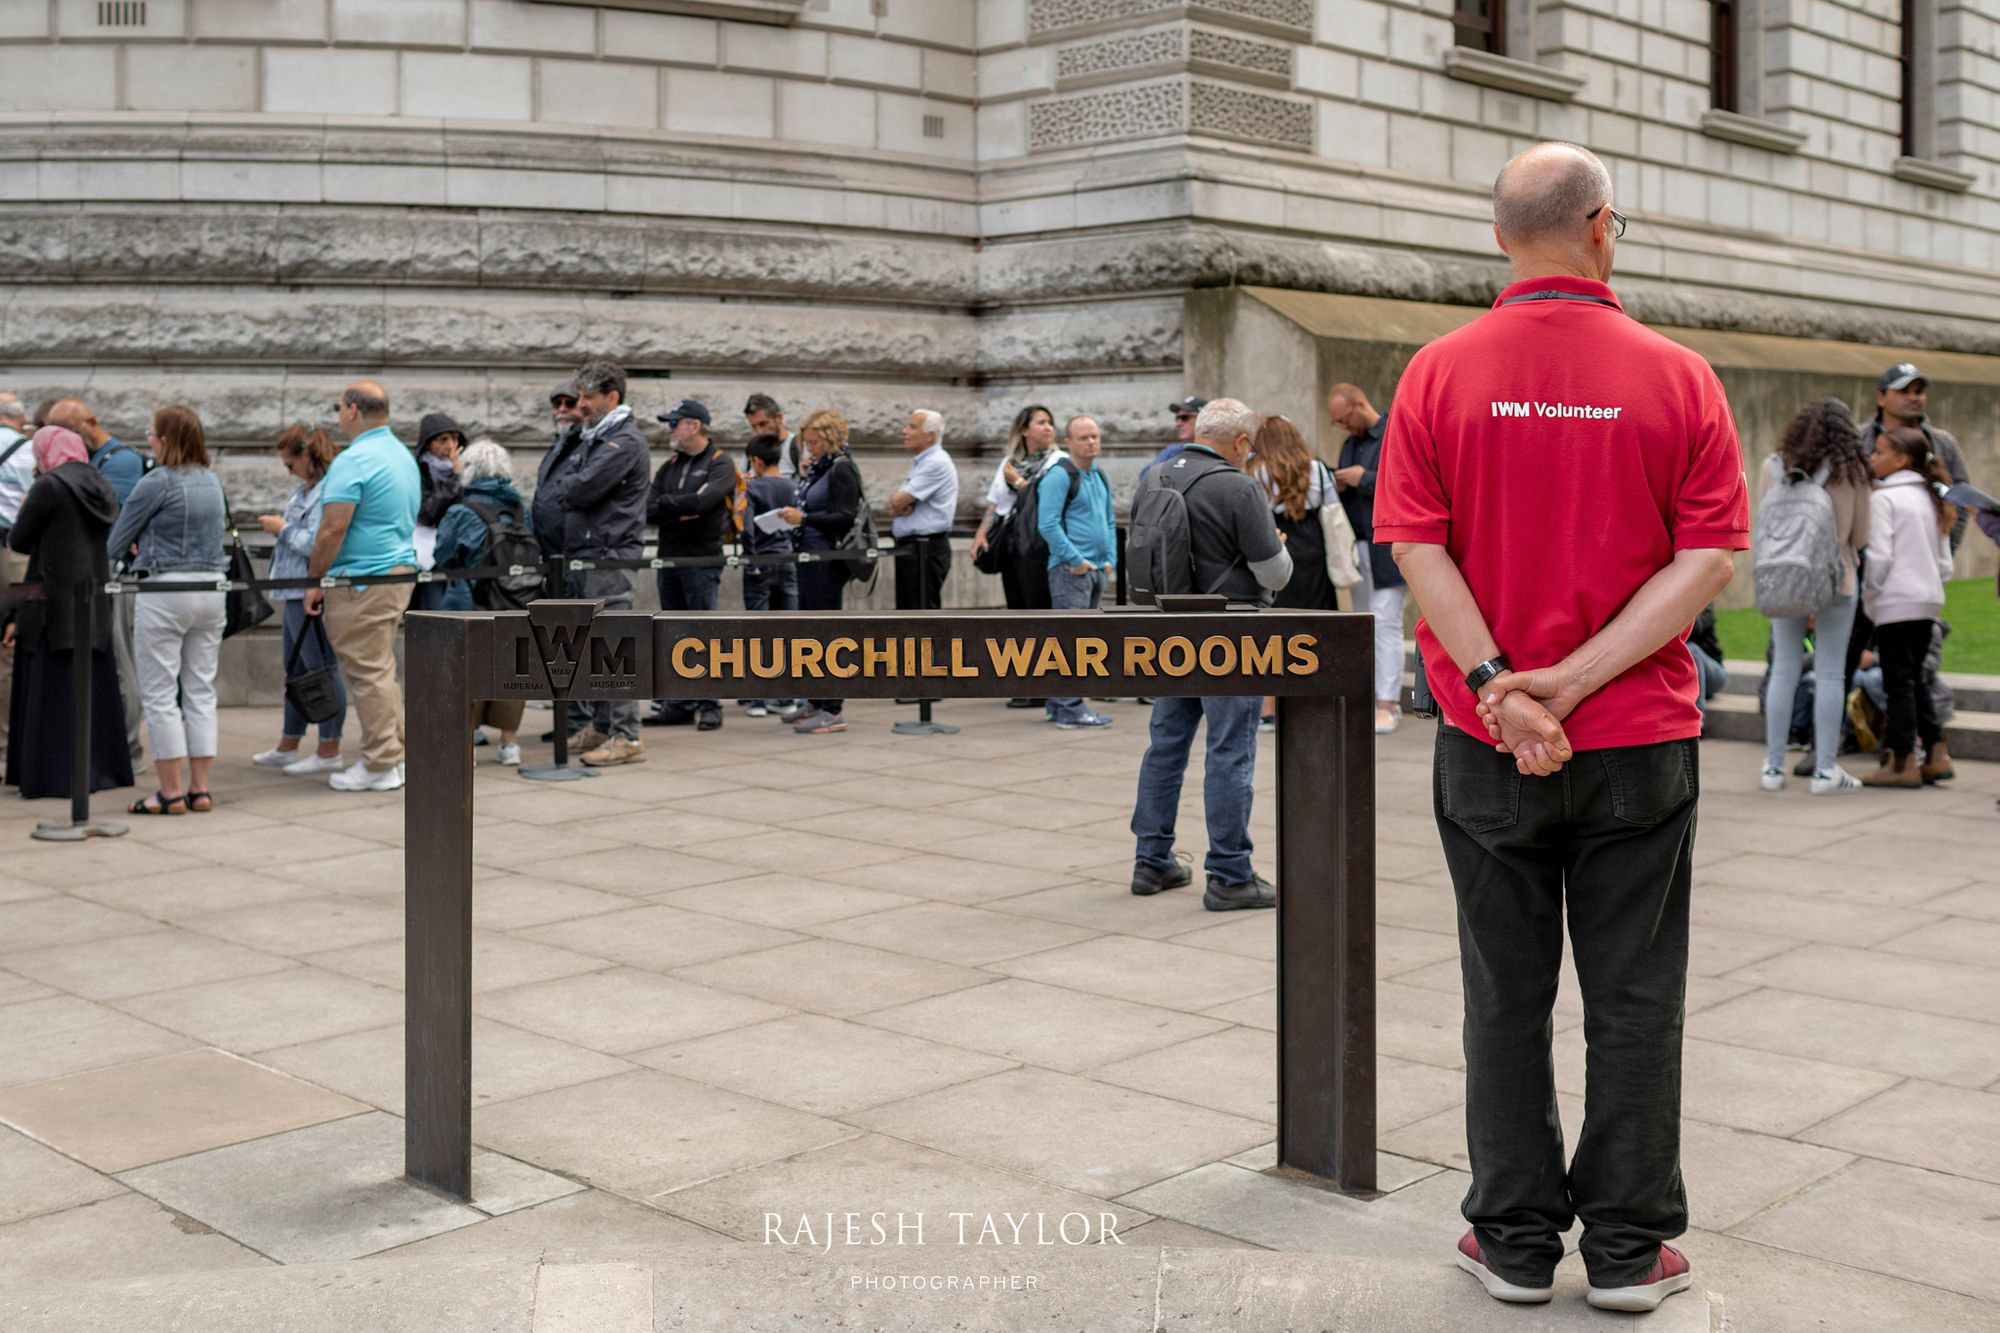 Pre-book your Churchill War Rooms Tickets in advance to avoid queues. © Rajesh Taylor